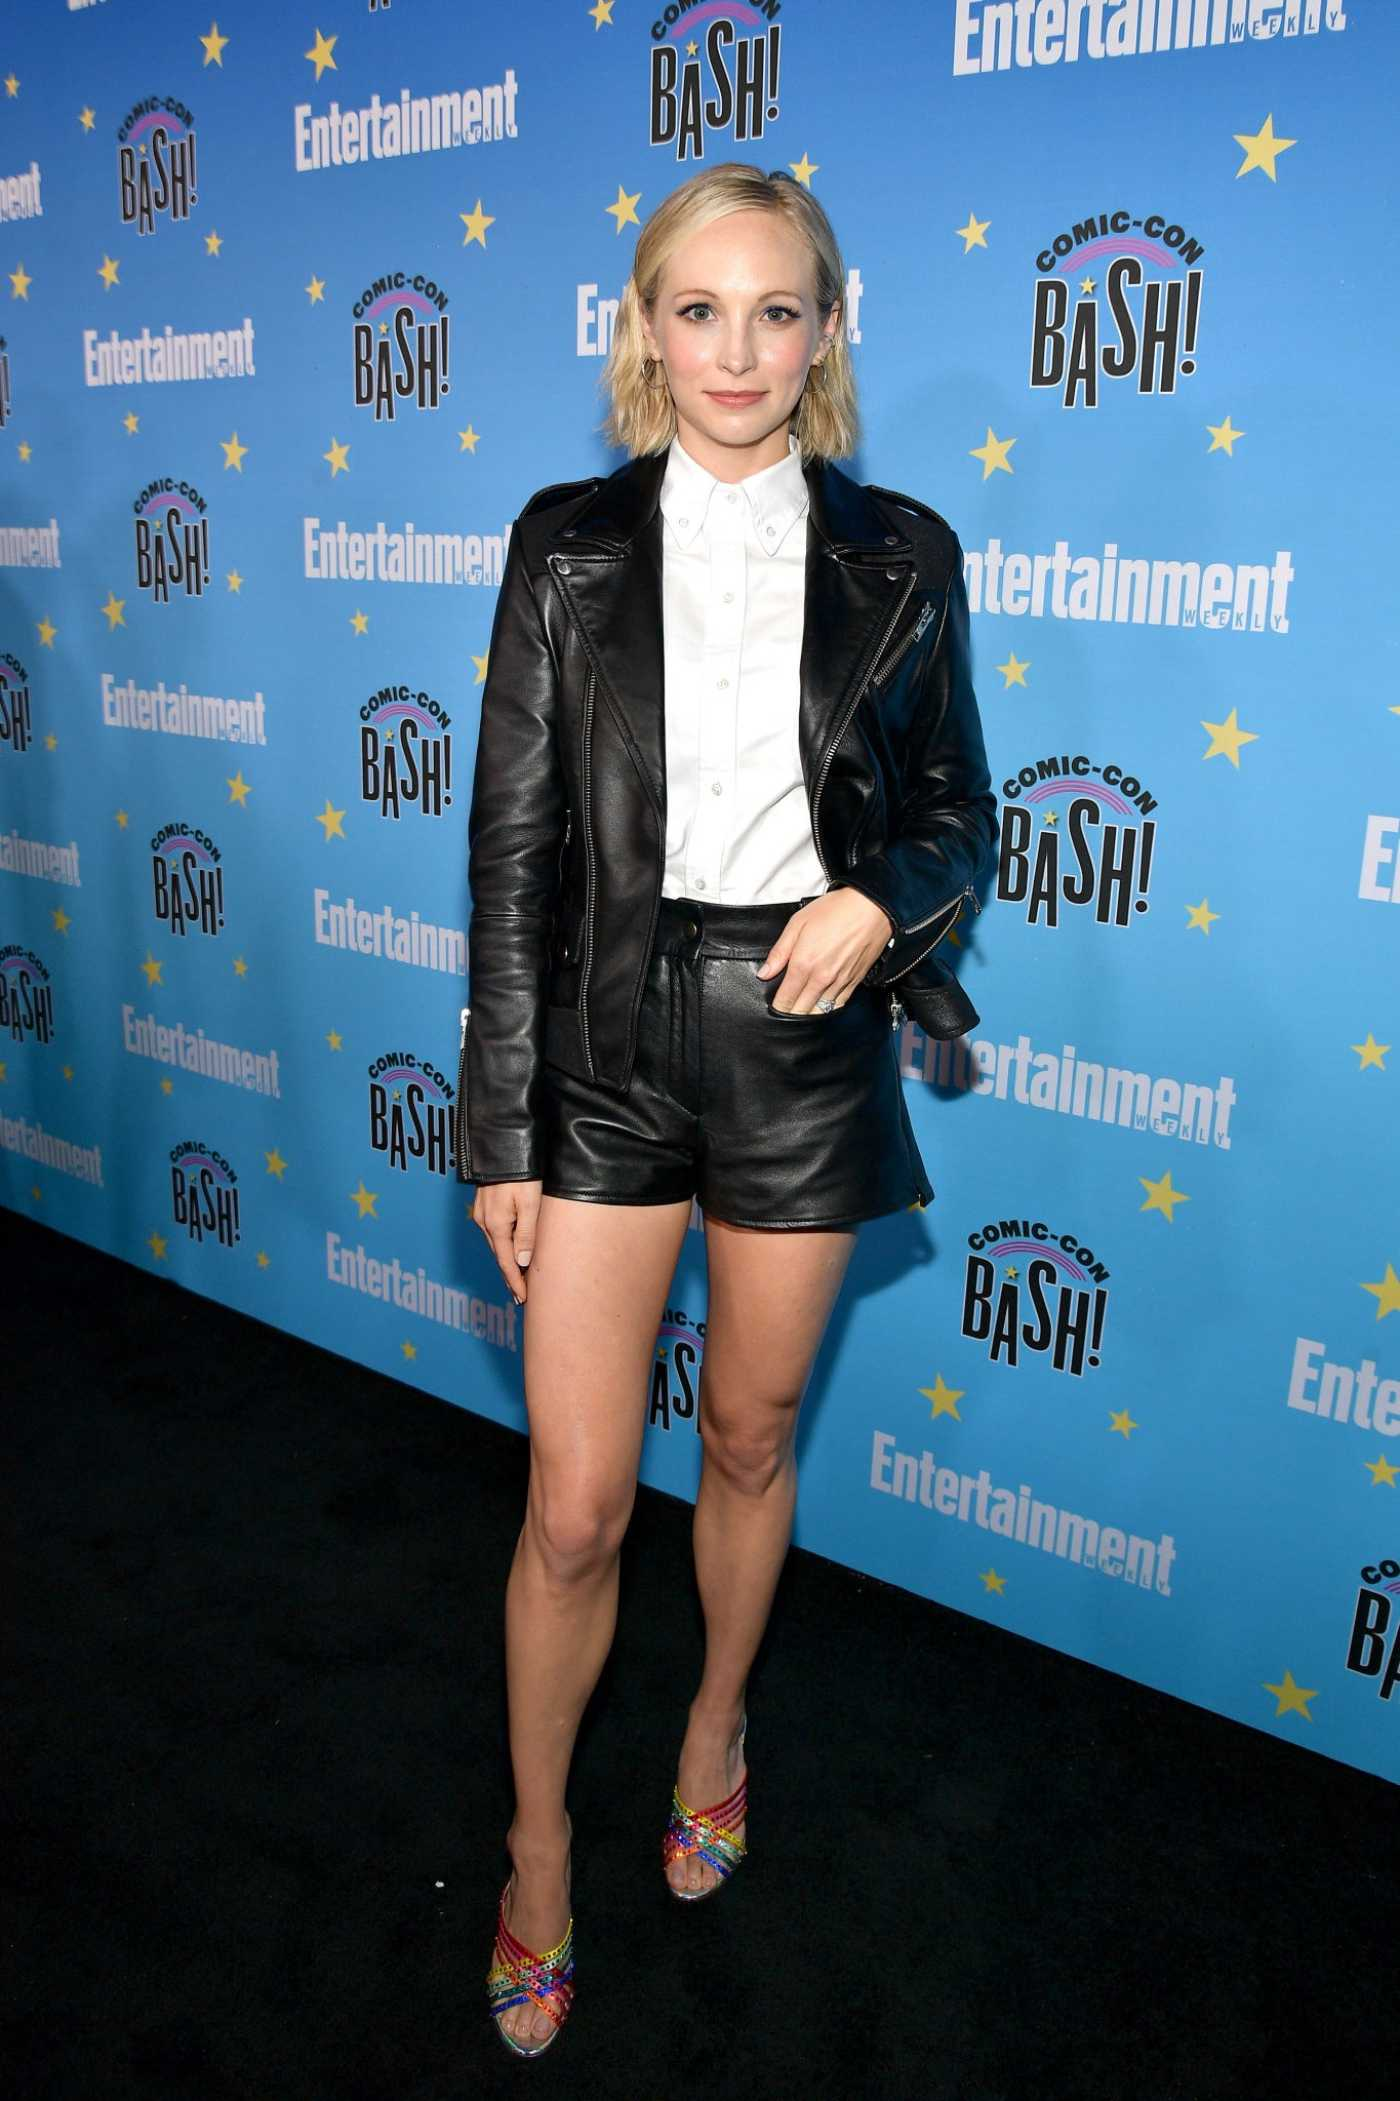 Candice King Attends Entertainment Weekly's Comic-Con Bash in San Diego 07/20/2019